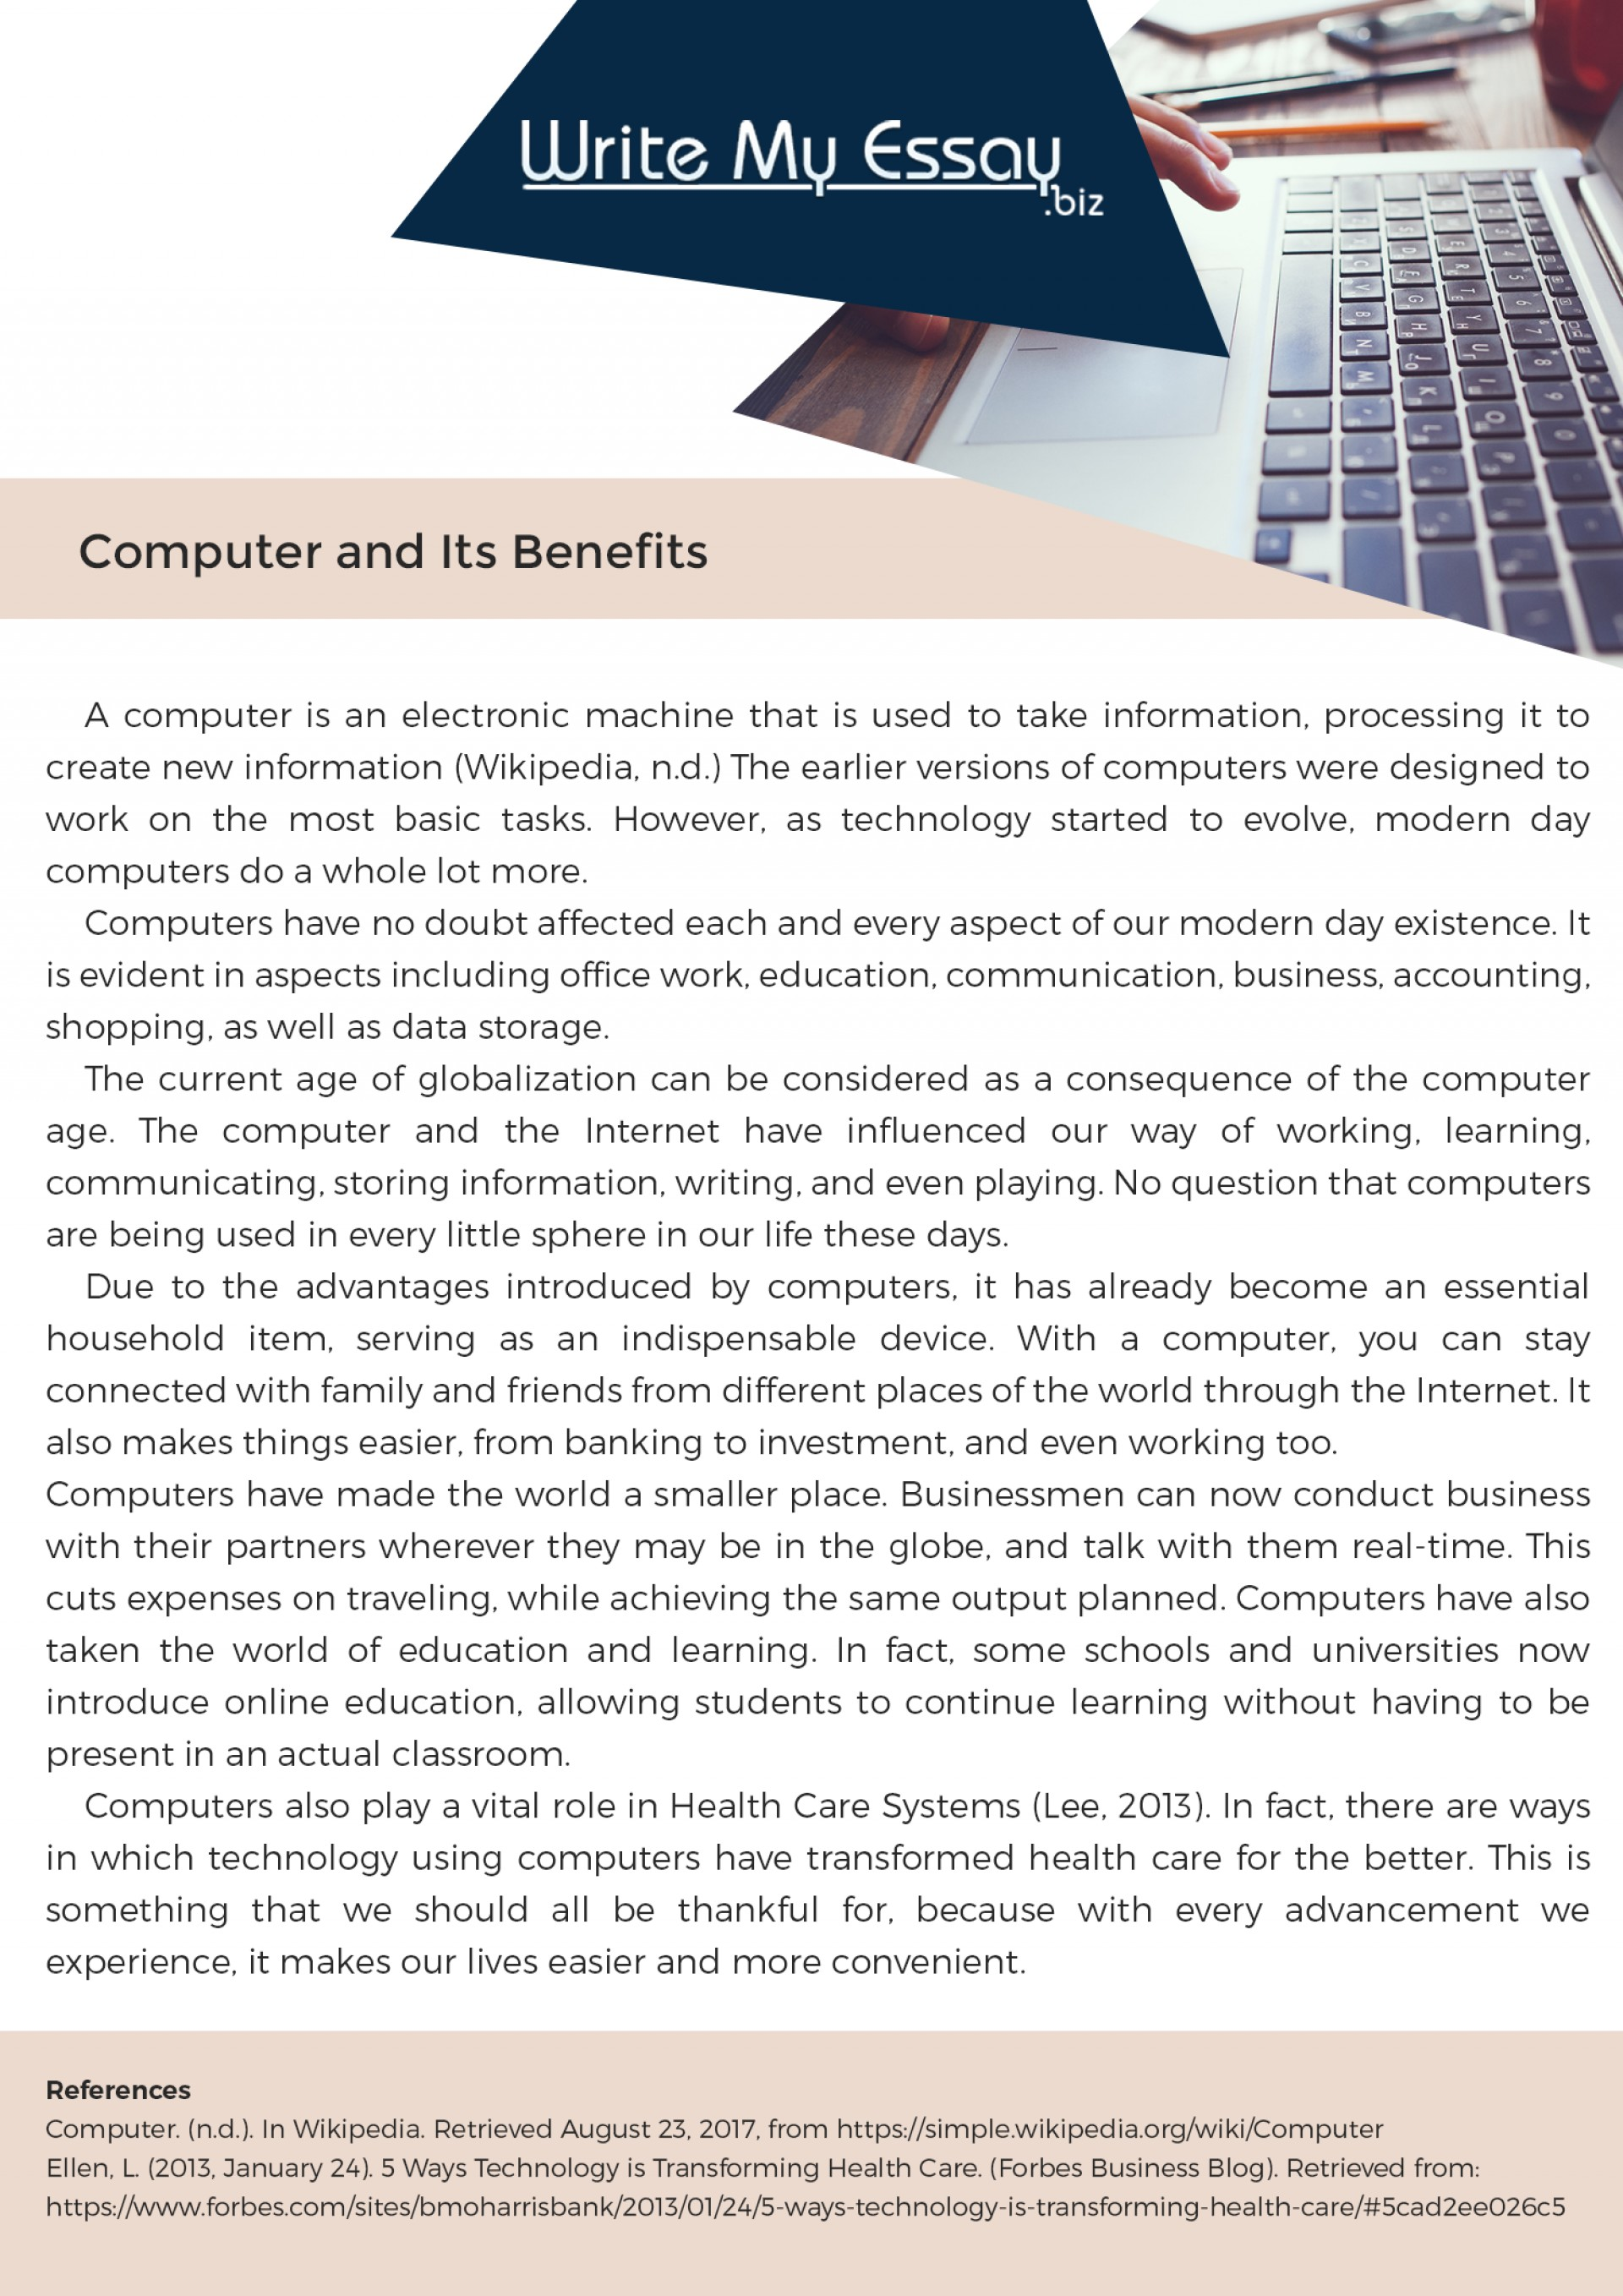 005 Essay Example On Computer And Its Benefits Fearsome Security Privacy Skills College Science 1920